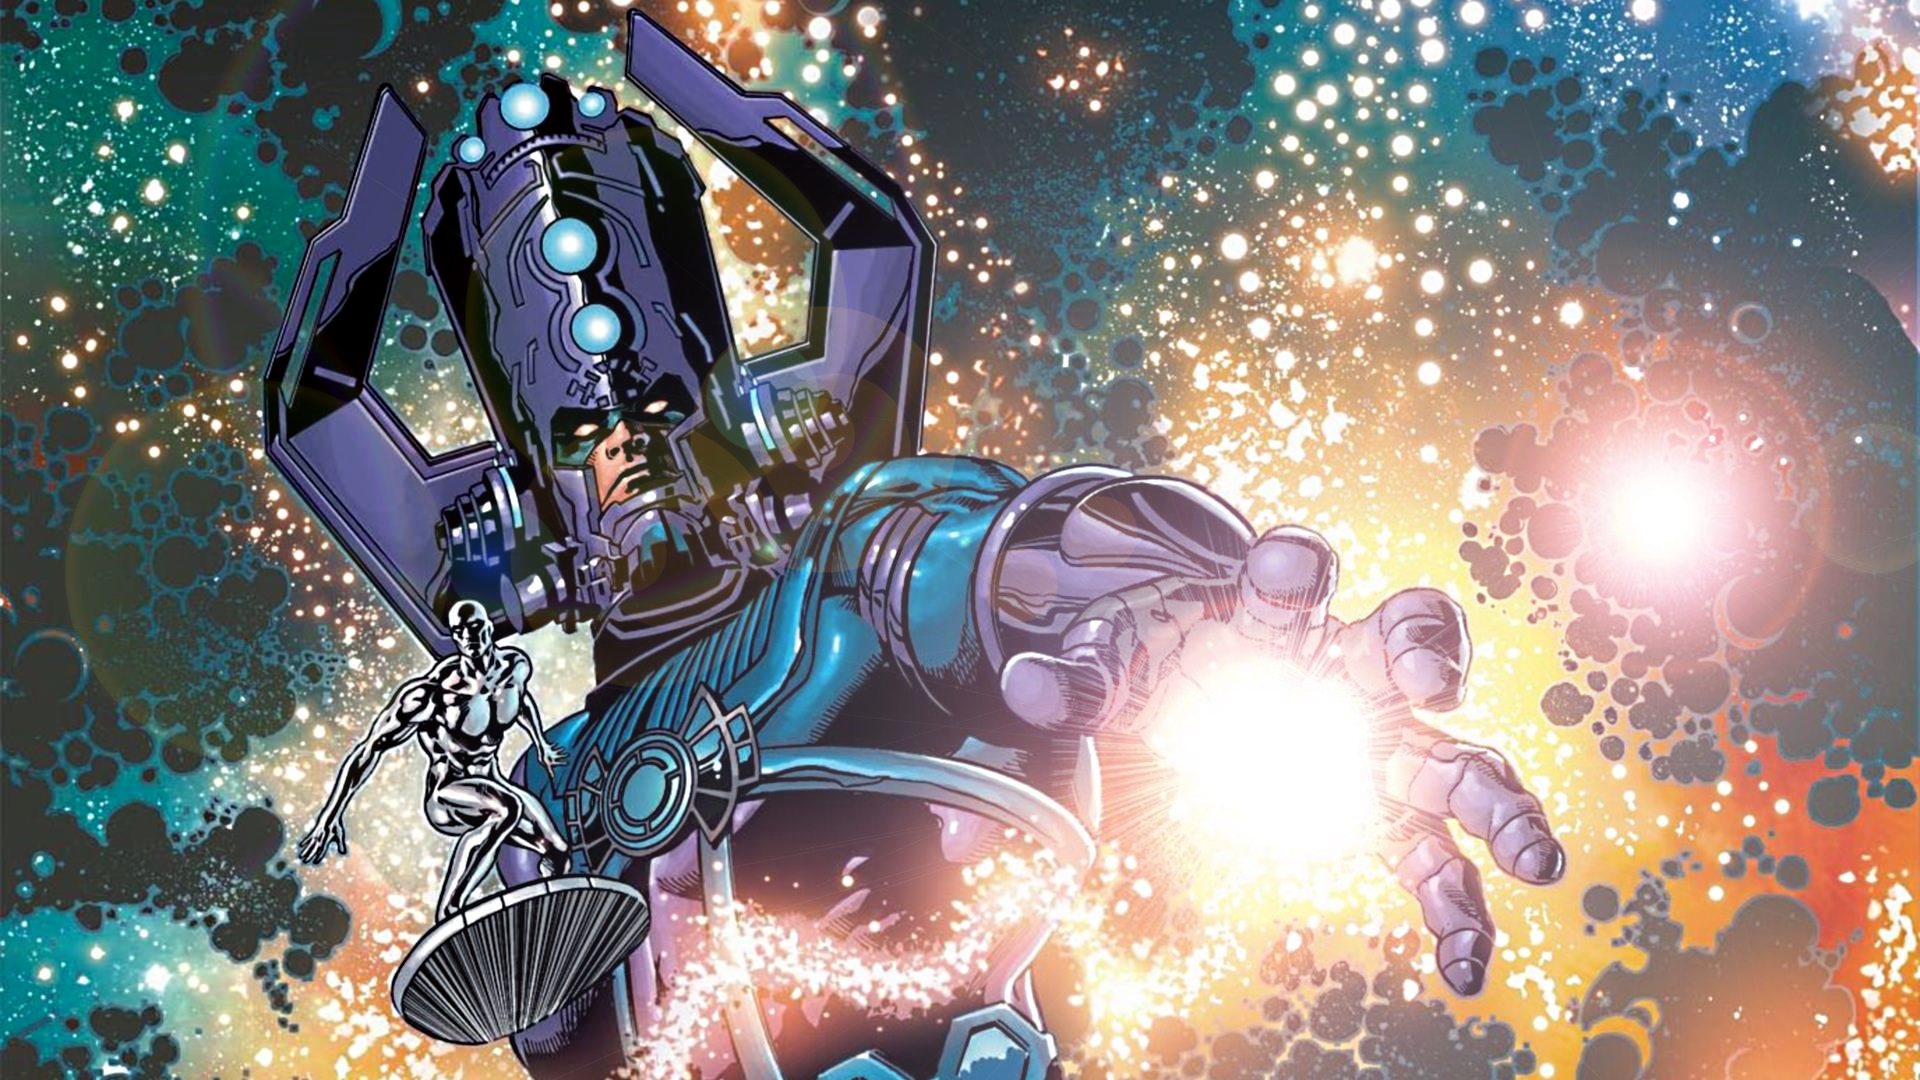 Silver Surfer Galactus Wallpaper Galactus and the silver